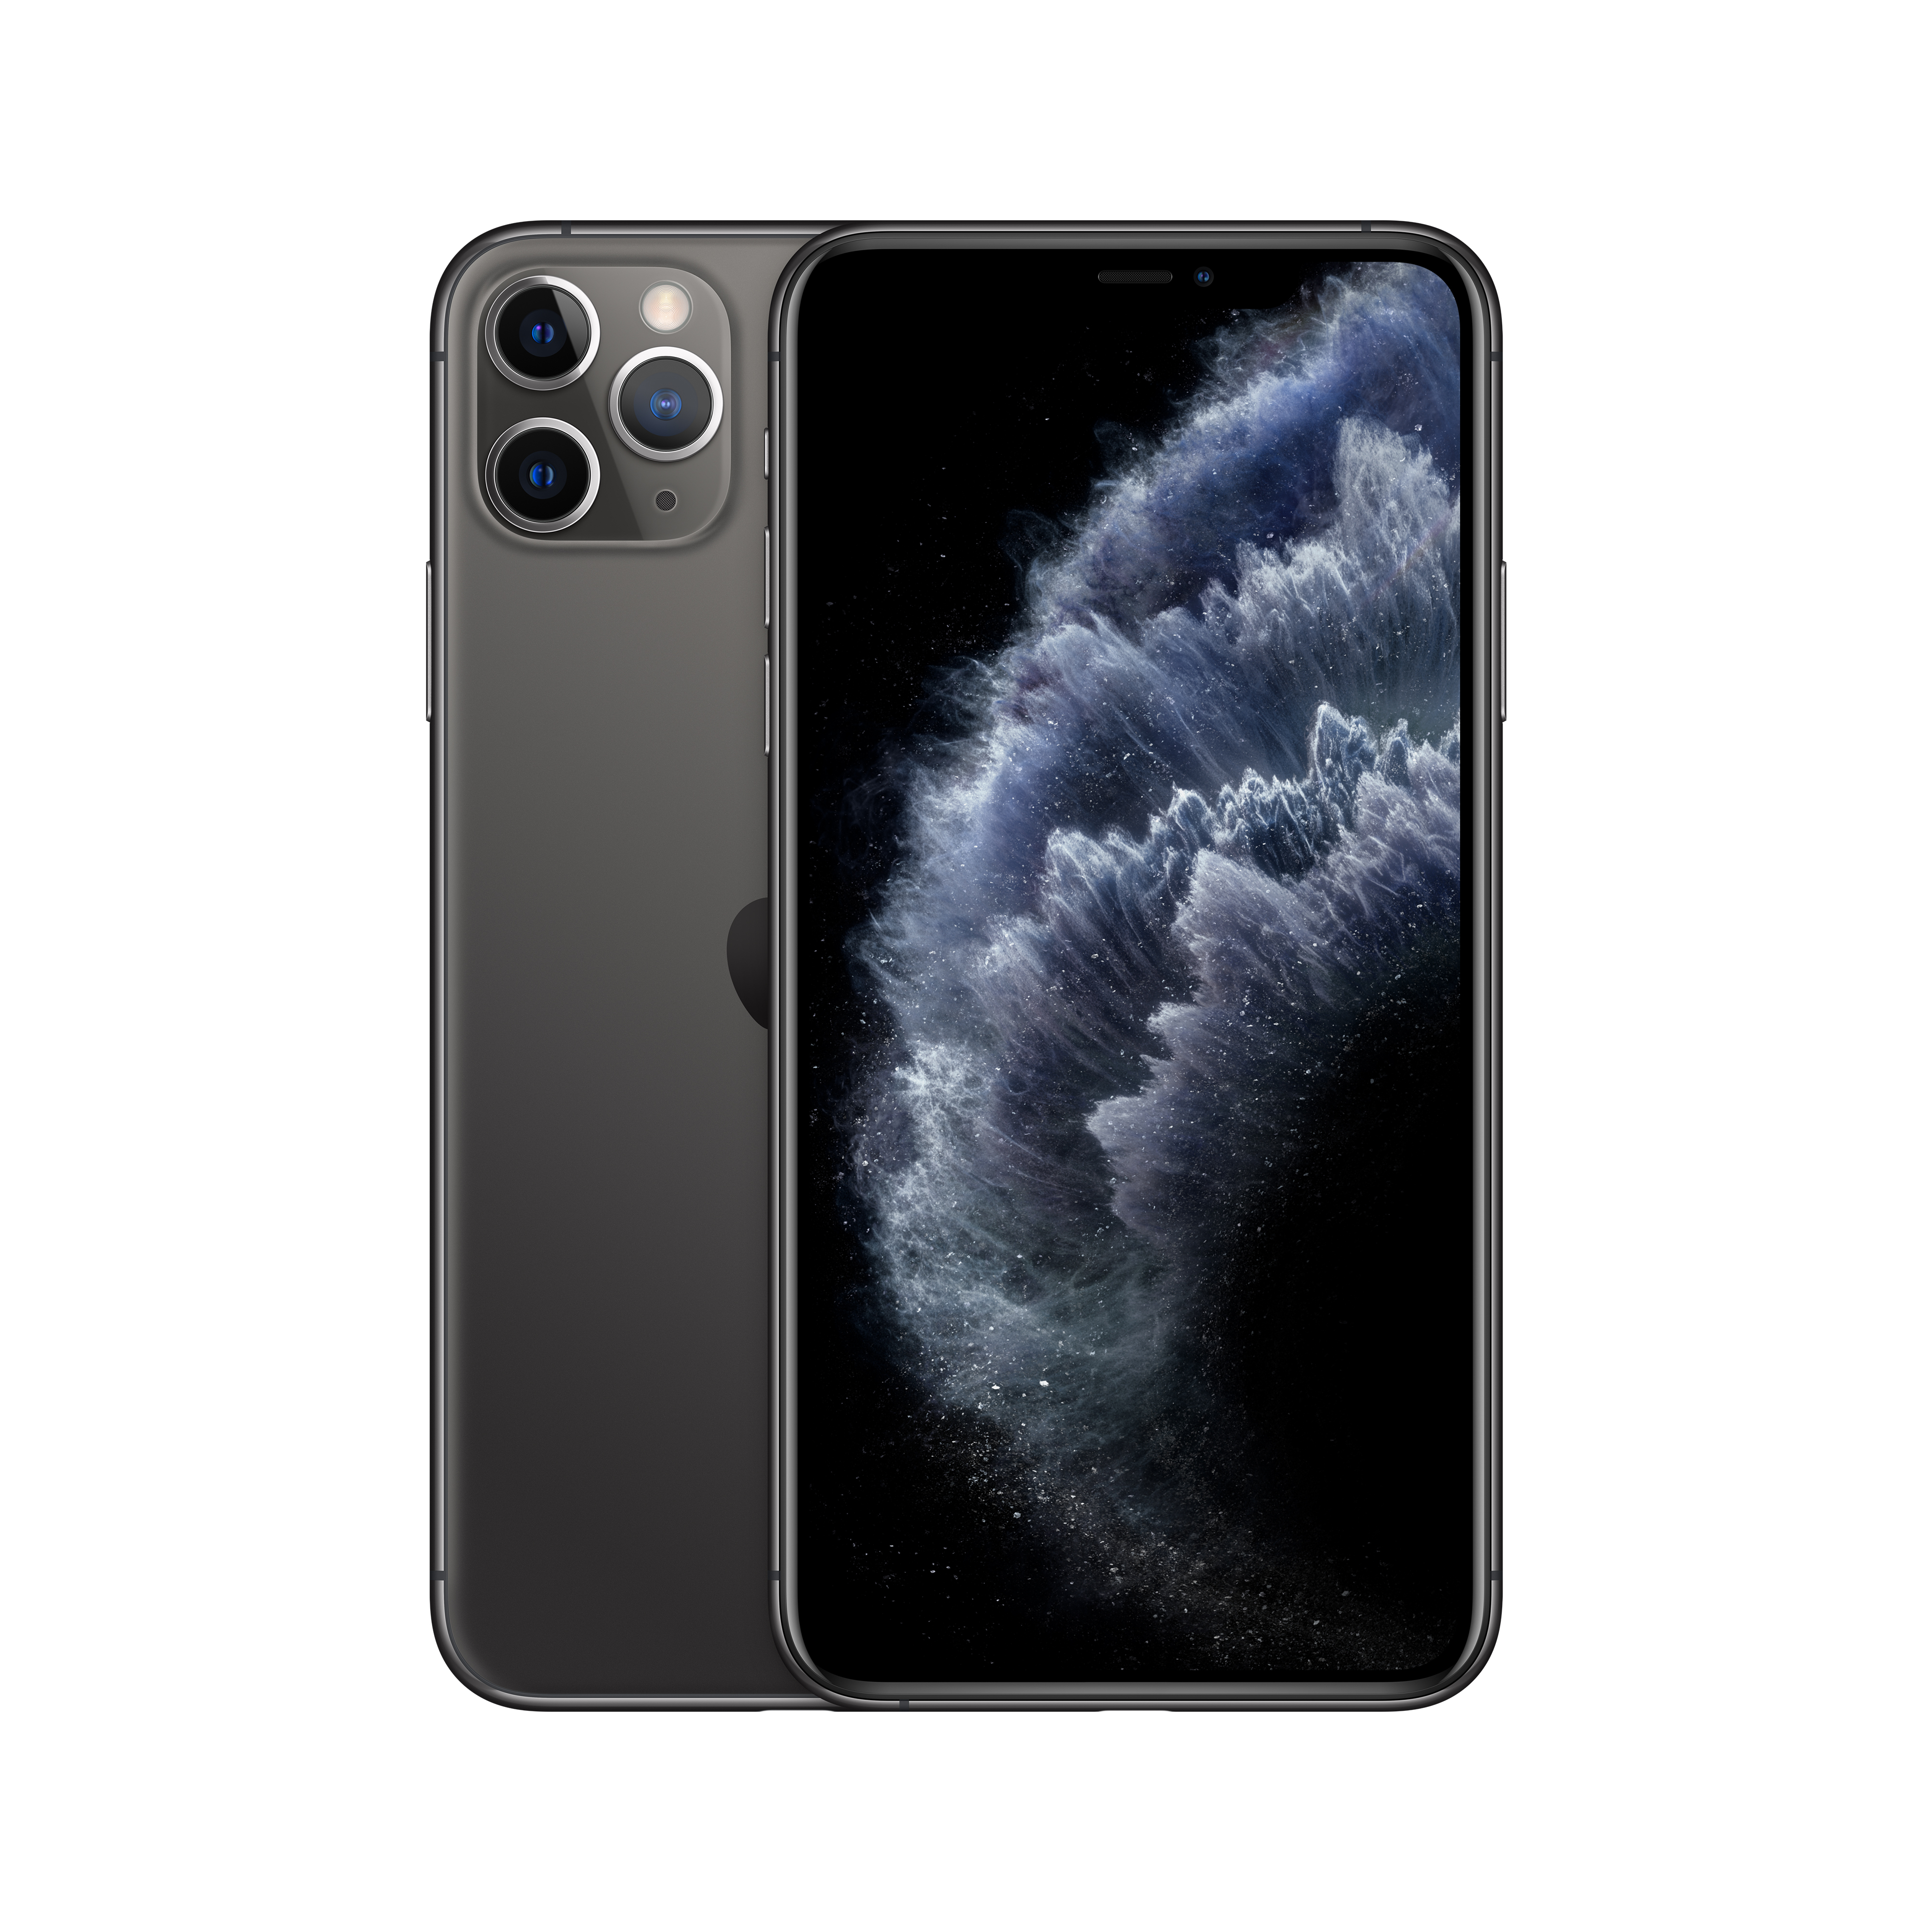 Apple 아이폰 11 Pro Max, Space Grey, 256GB